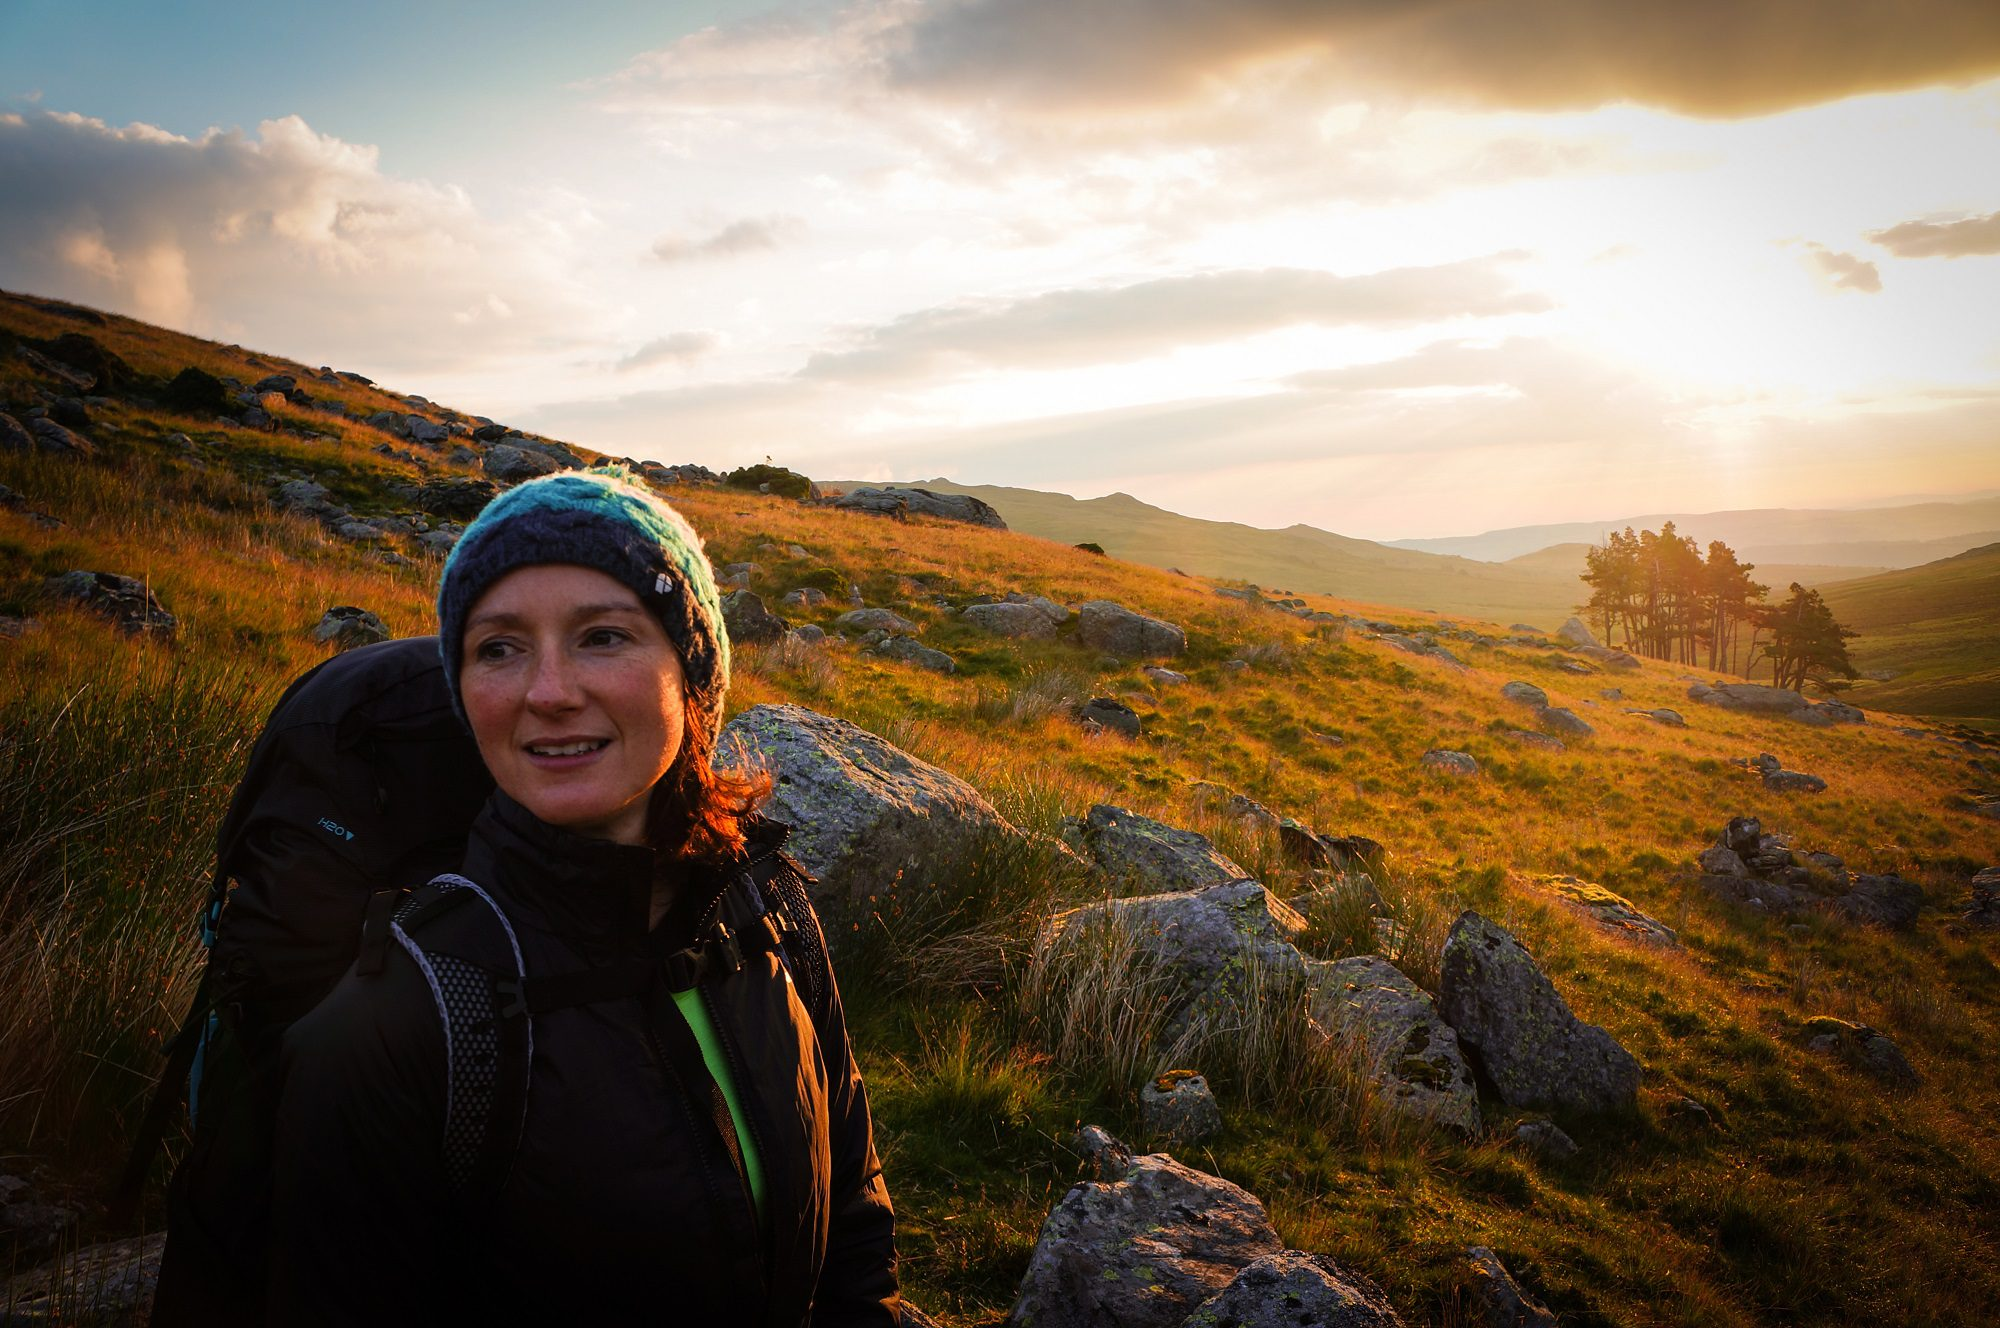 Mindful Walking in North Wales offers the ideal antidote to today's worries